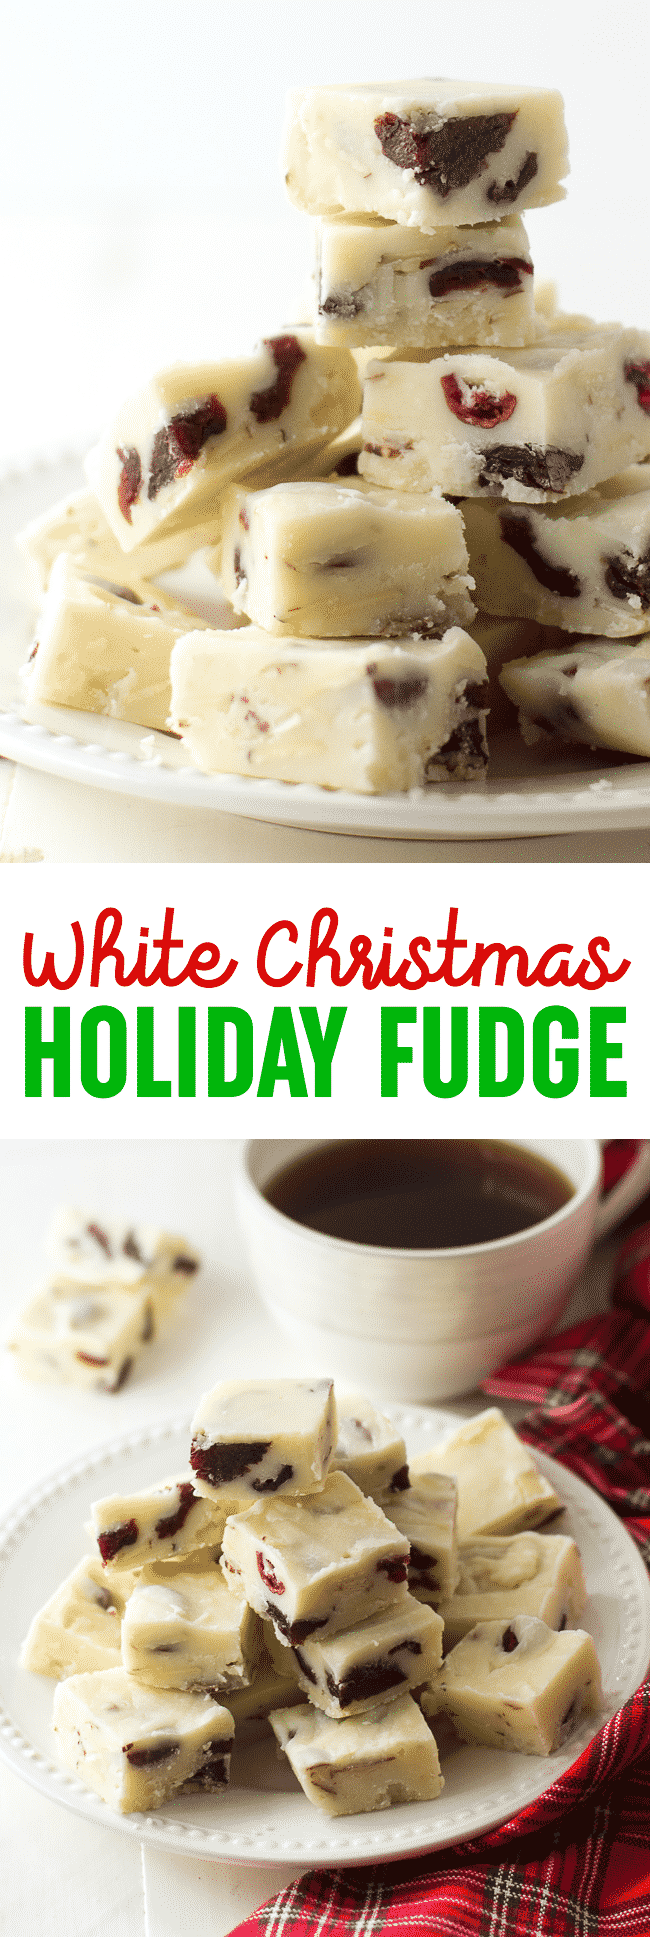 White Christmas Fudge Recipe - This white Christmas holiday fudge is made using dried fruit and nuts. It's such a wonderful Christmas dessert recipe!